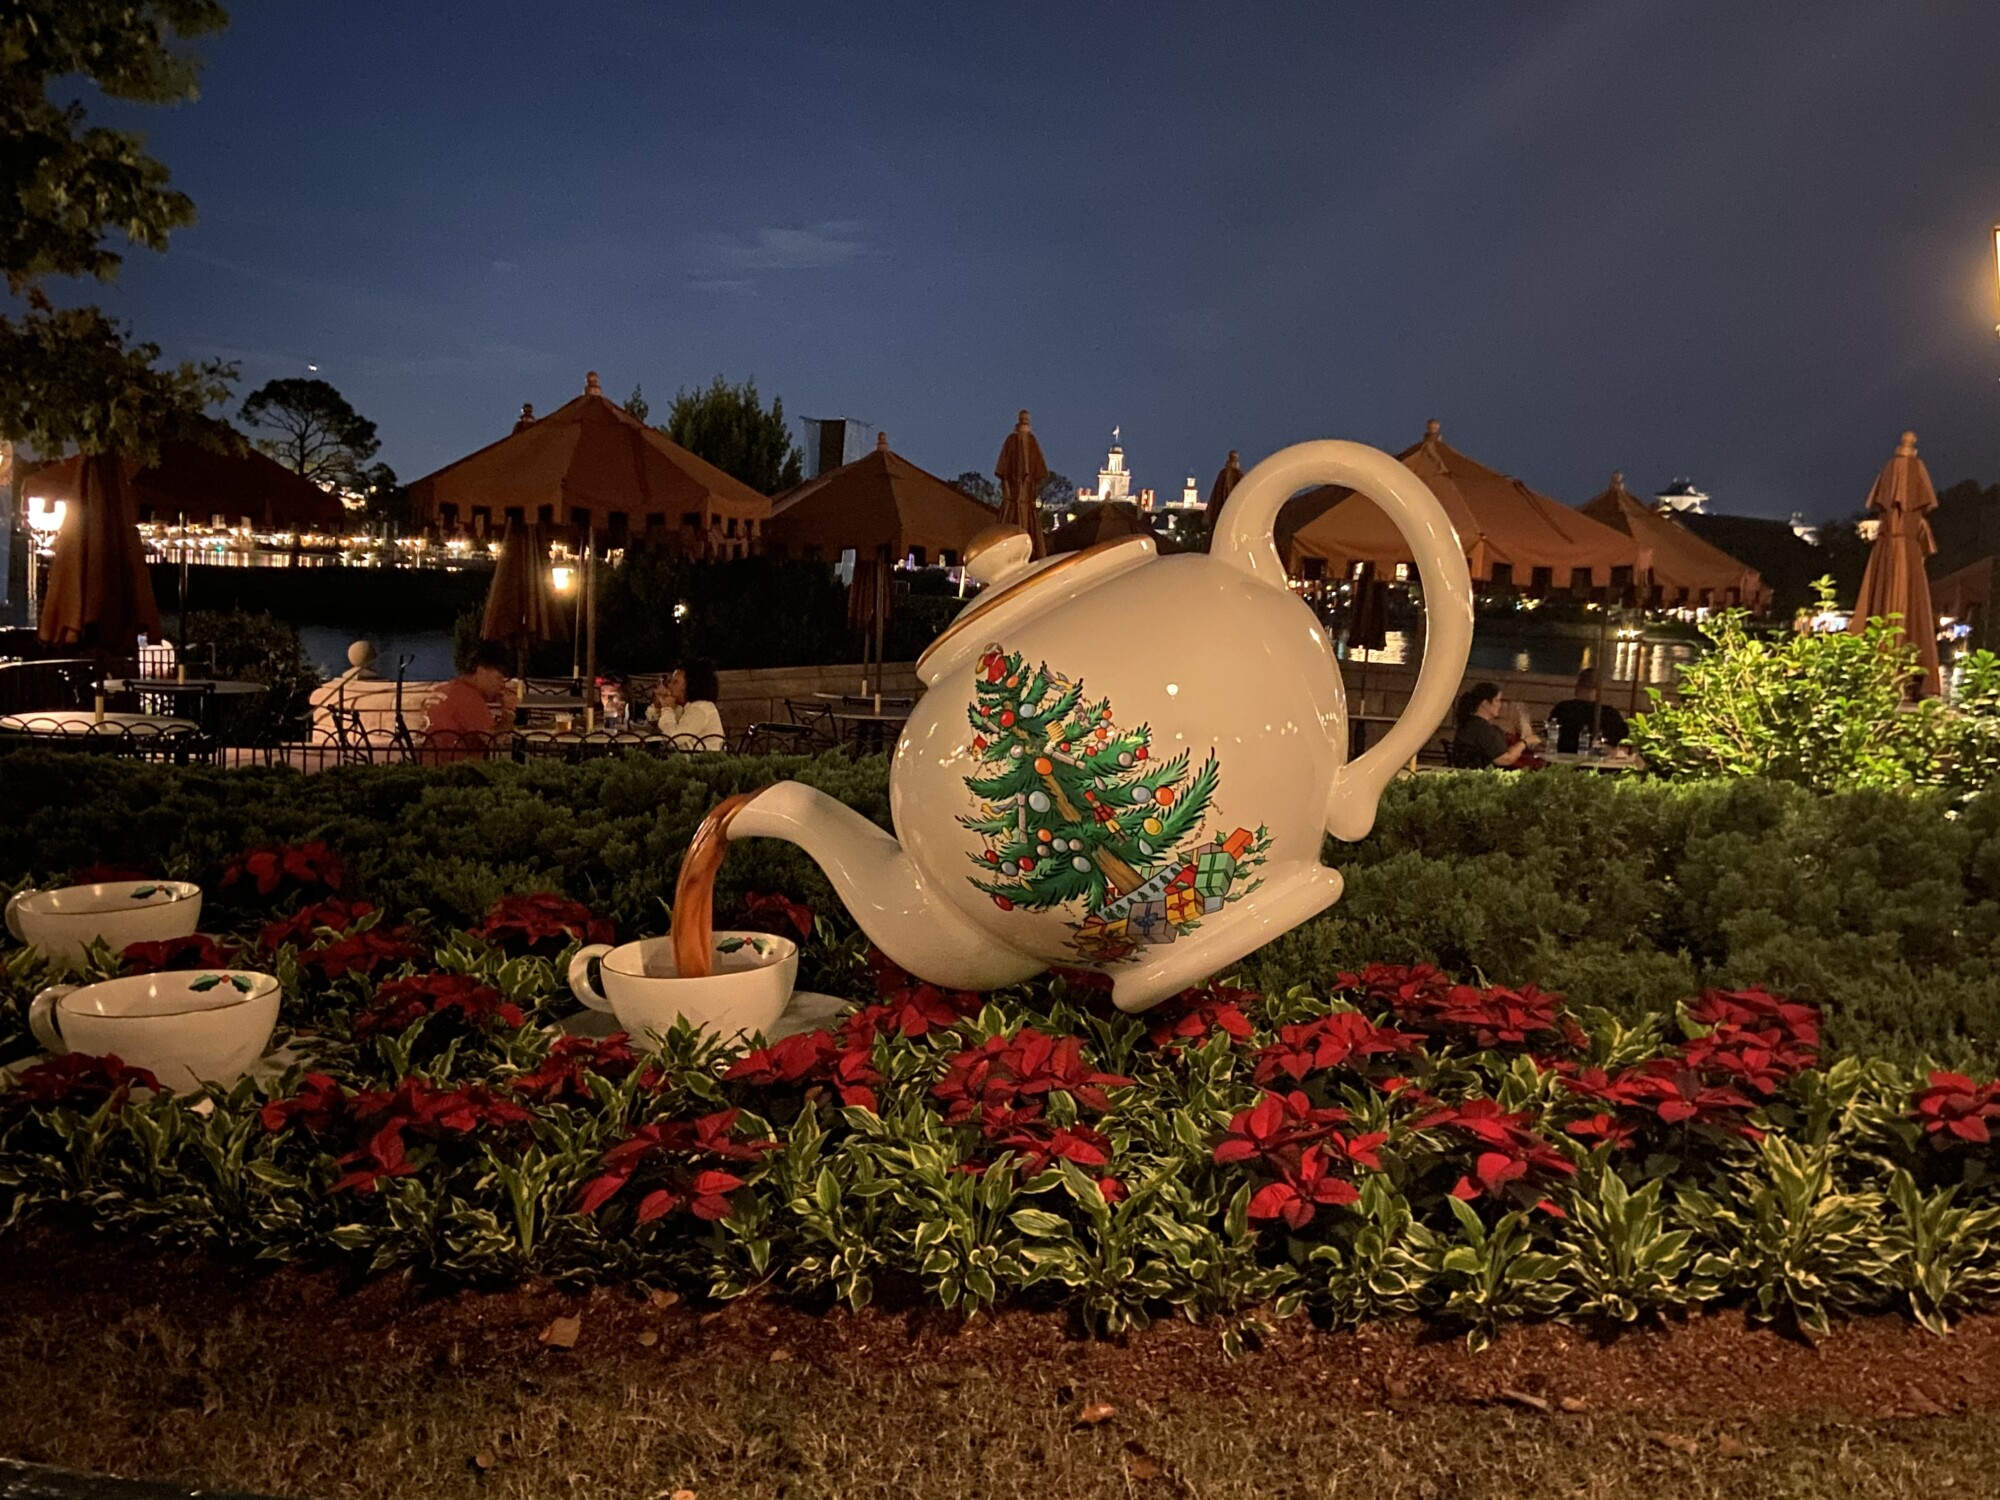 Photos from Opening Weekend at the Epcot International Festival of the Holidays 10